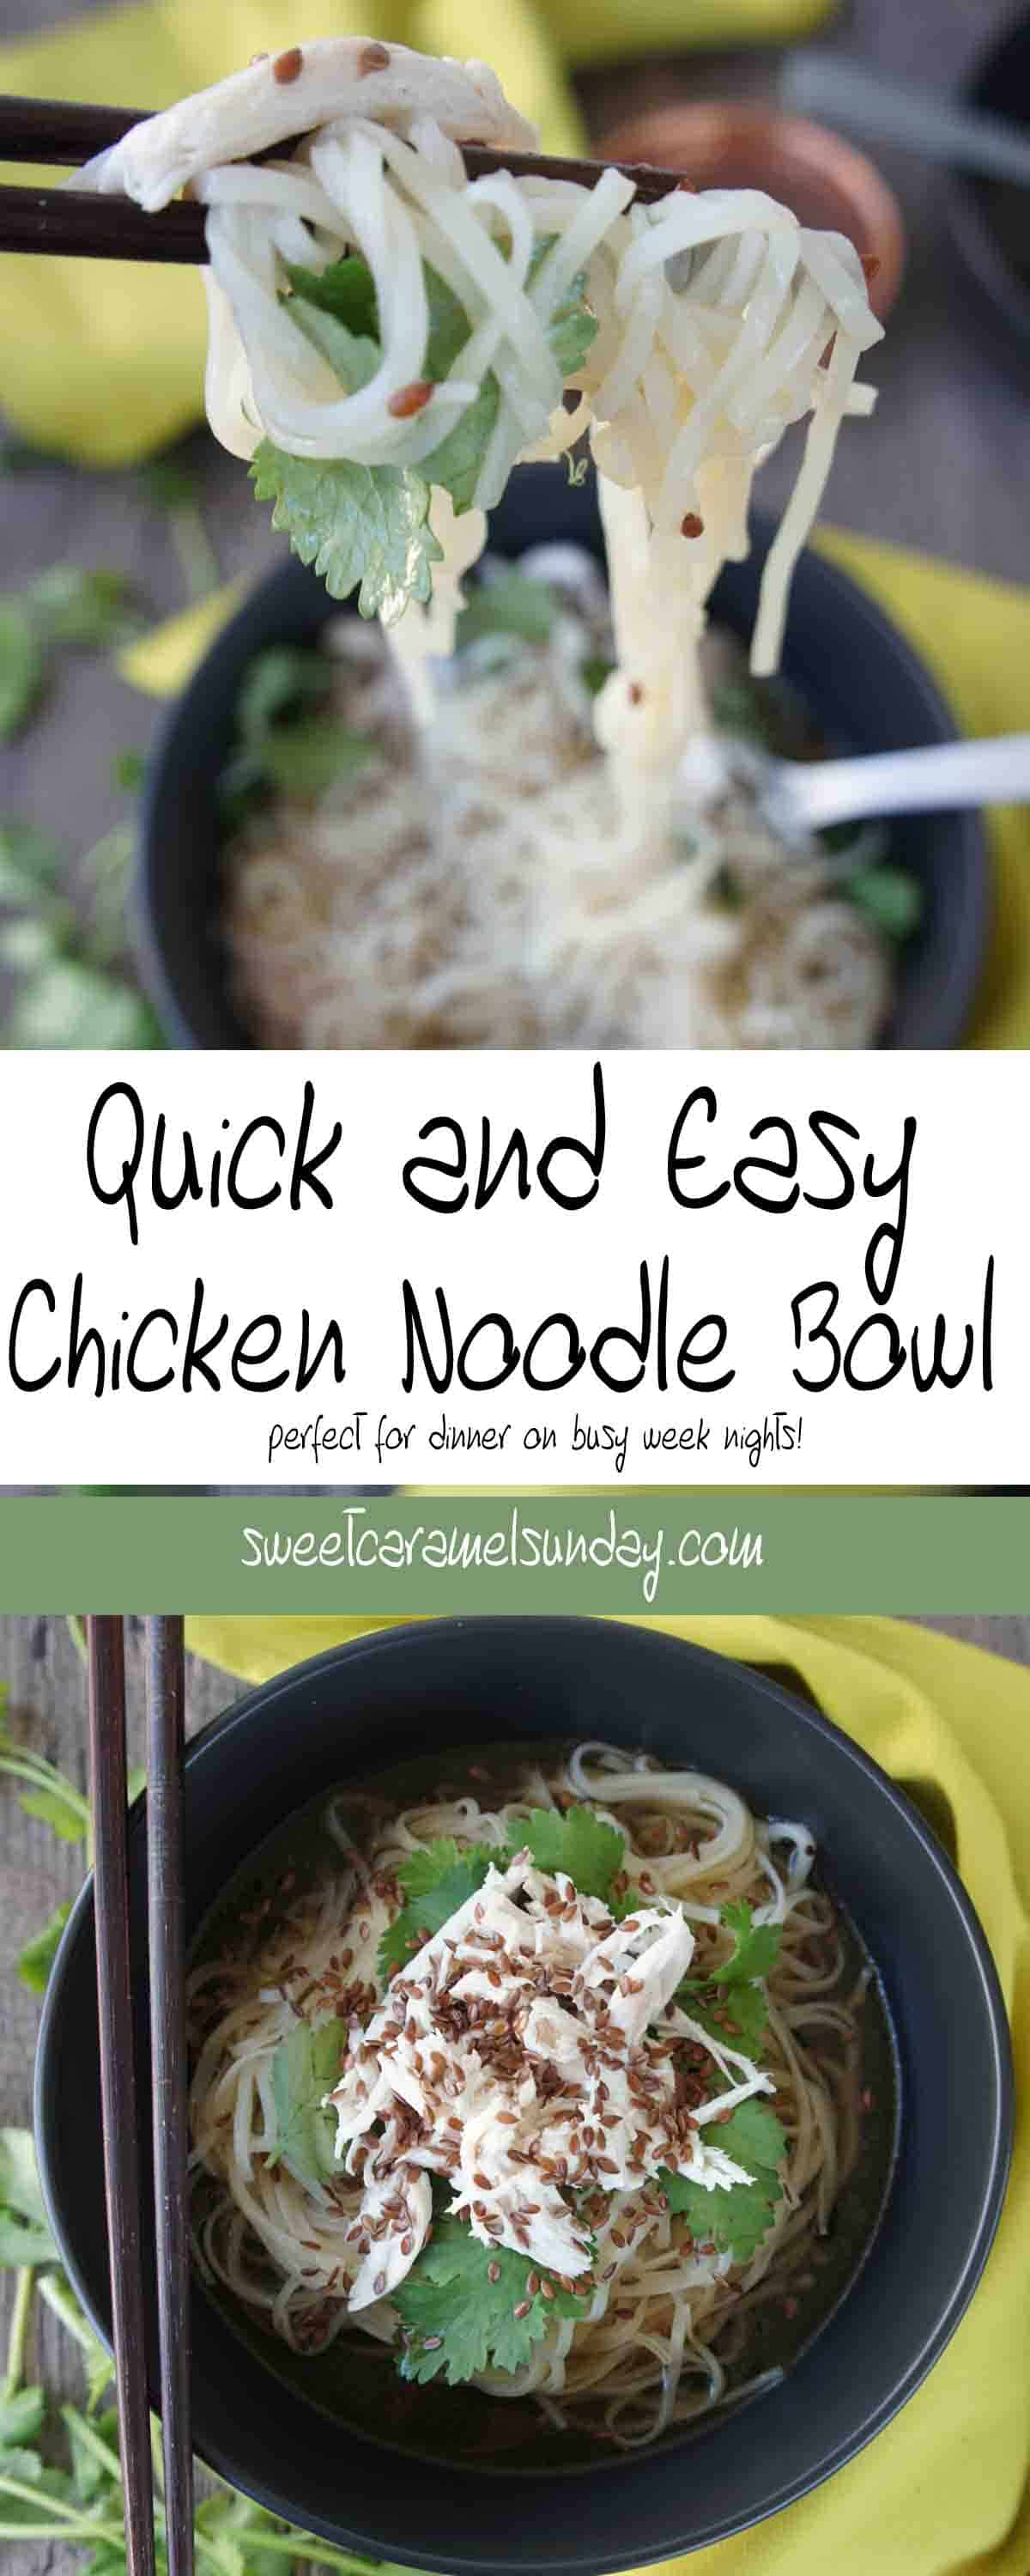 Quick and Easy Chicken Noodle Bowl   Sweet Caramel Sunday